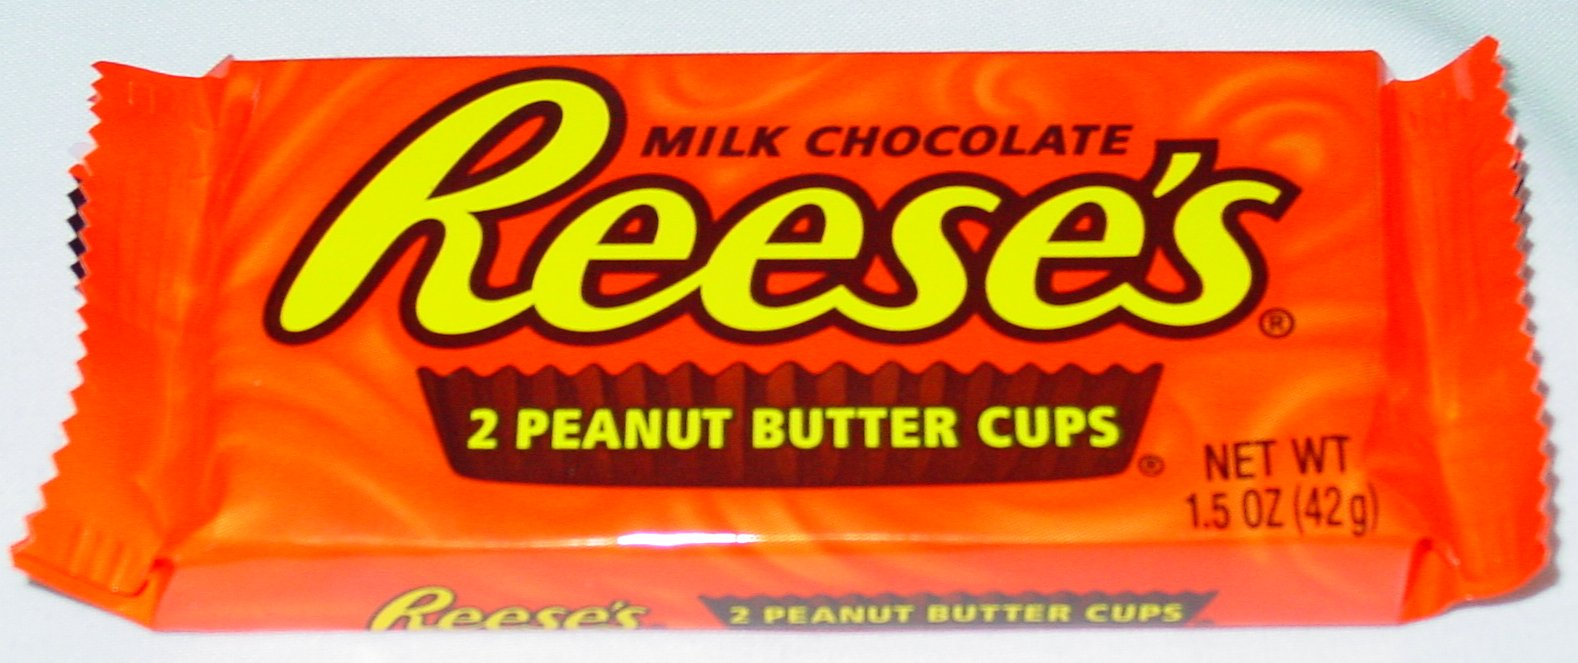 Halloween Fun Fact: The Reese in Reese's Peanut Butter Cups is Harry Burnett Reese, a former Hershey employee who created his famous candy in the 1920s.